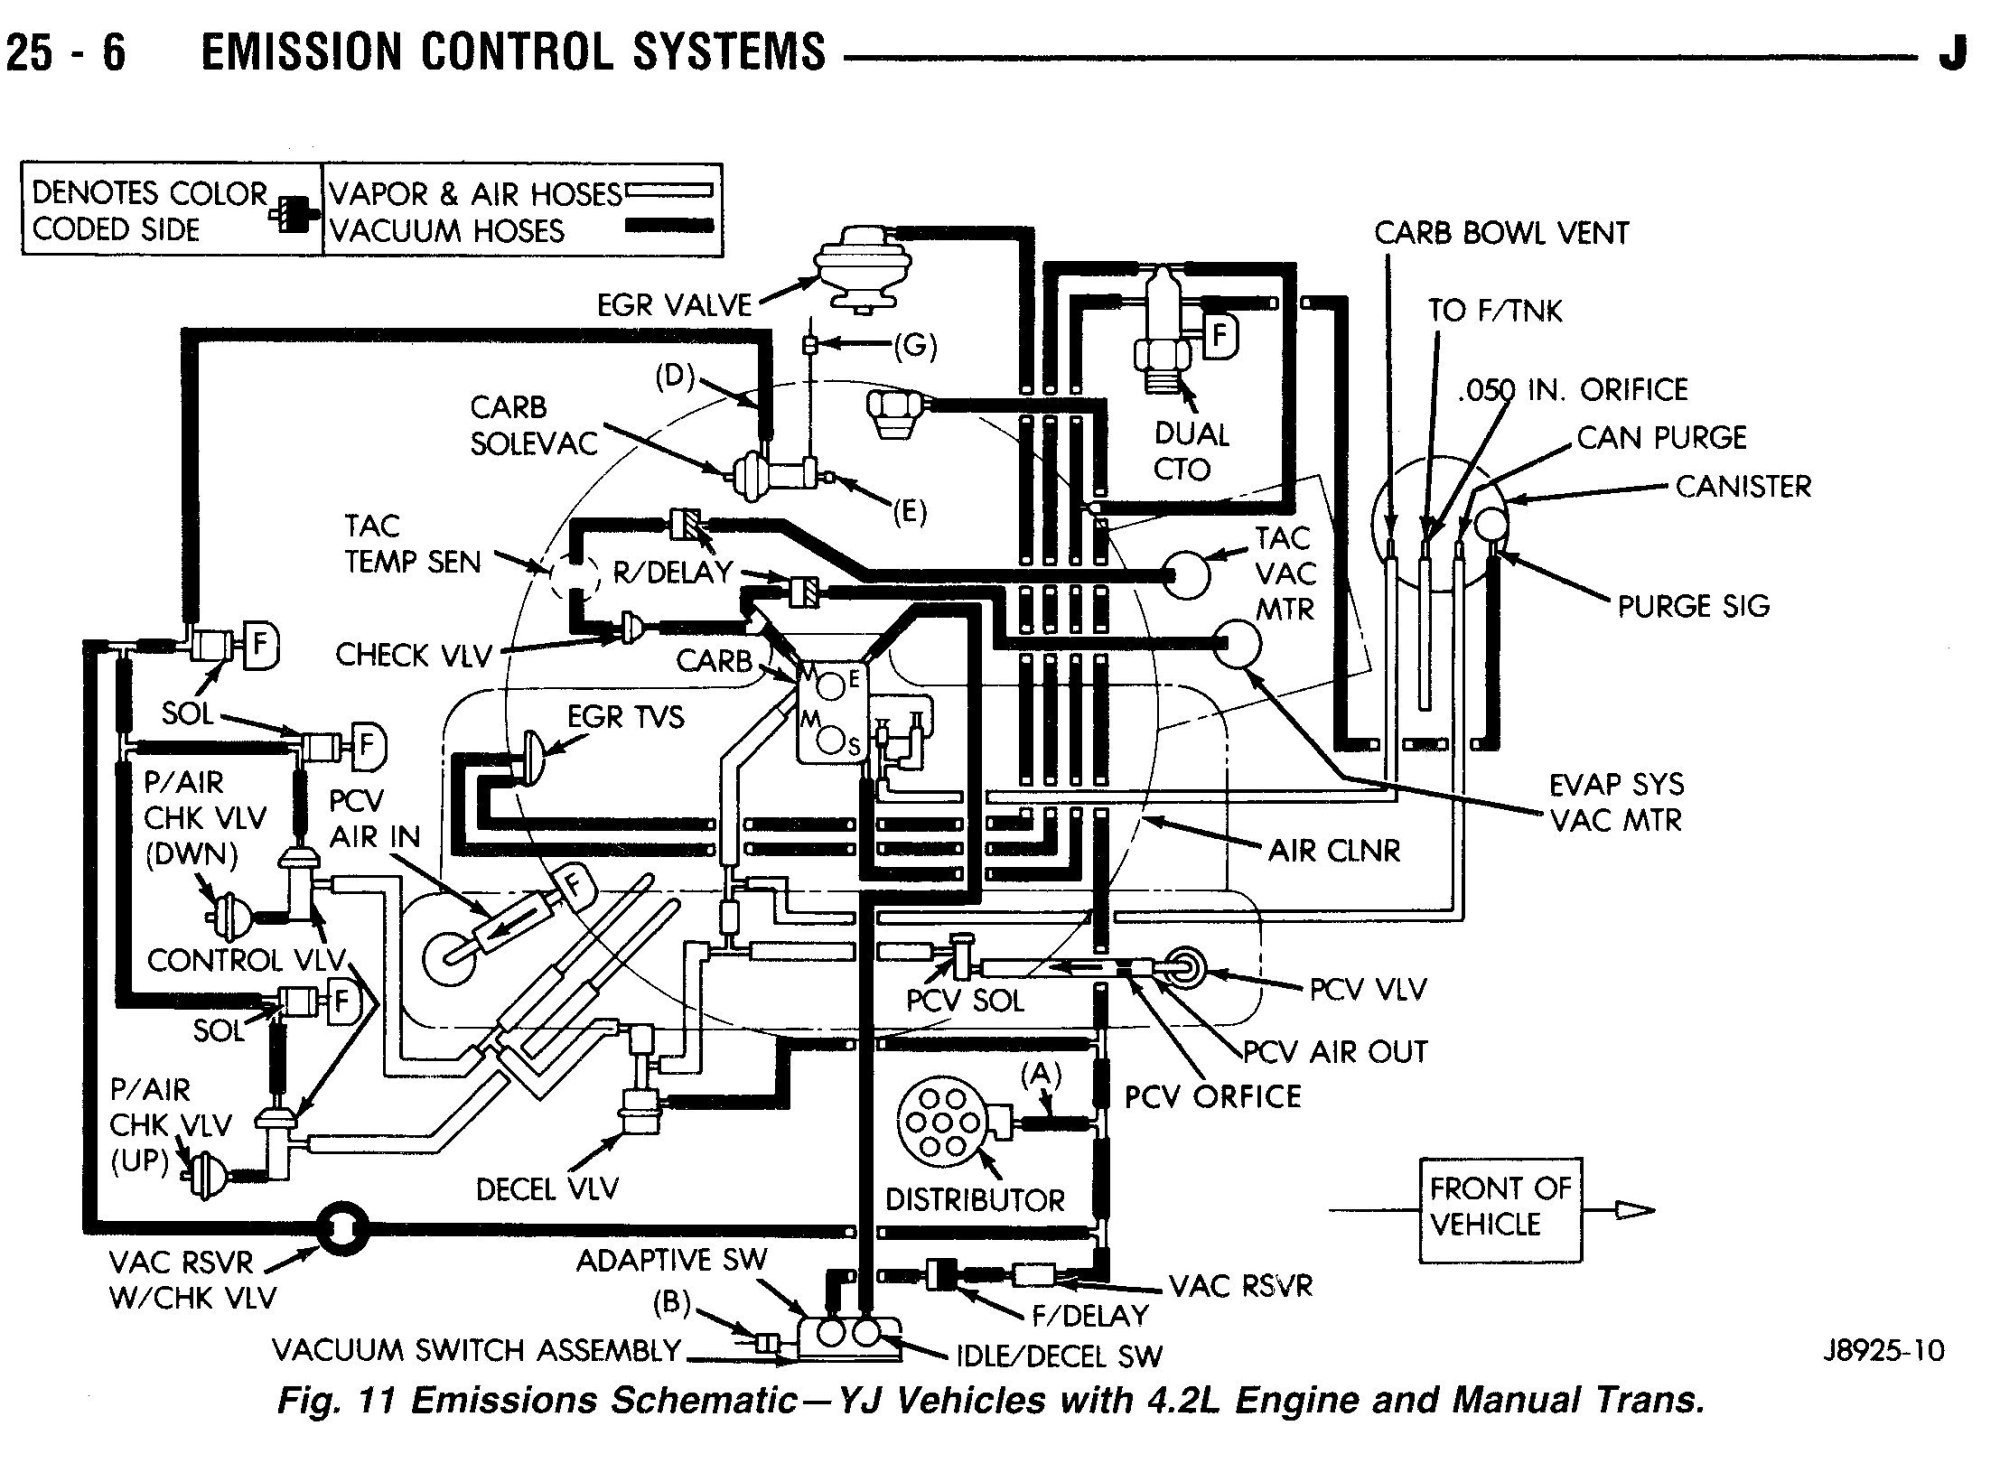 hight resolution of wiring harness diagram for 1990 jeep yj wiring diagram third level rh 20 7 15 jacobwinterstein com 2010 jeep wrangler fuel system diagram jeep wrangler fuel